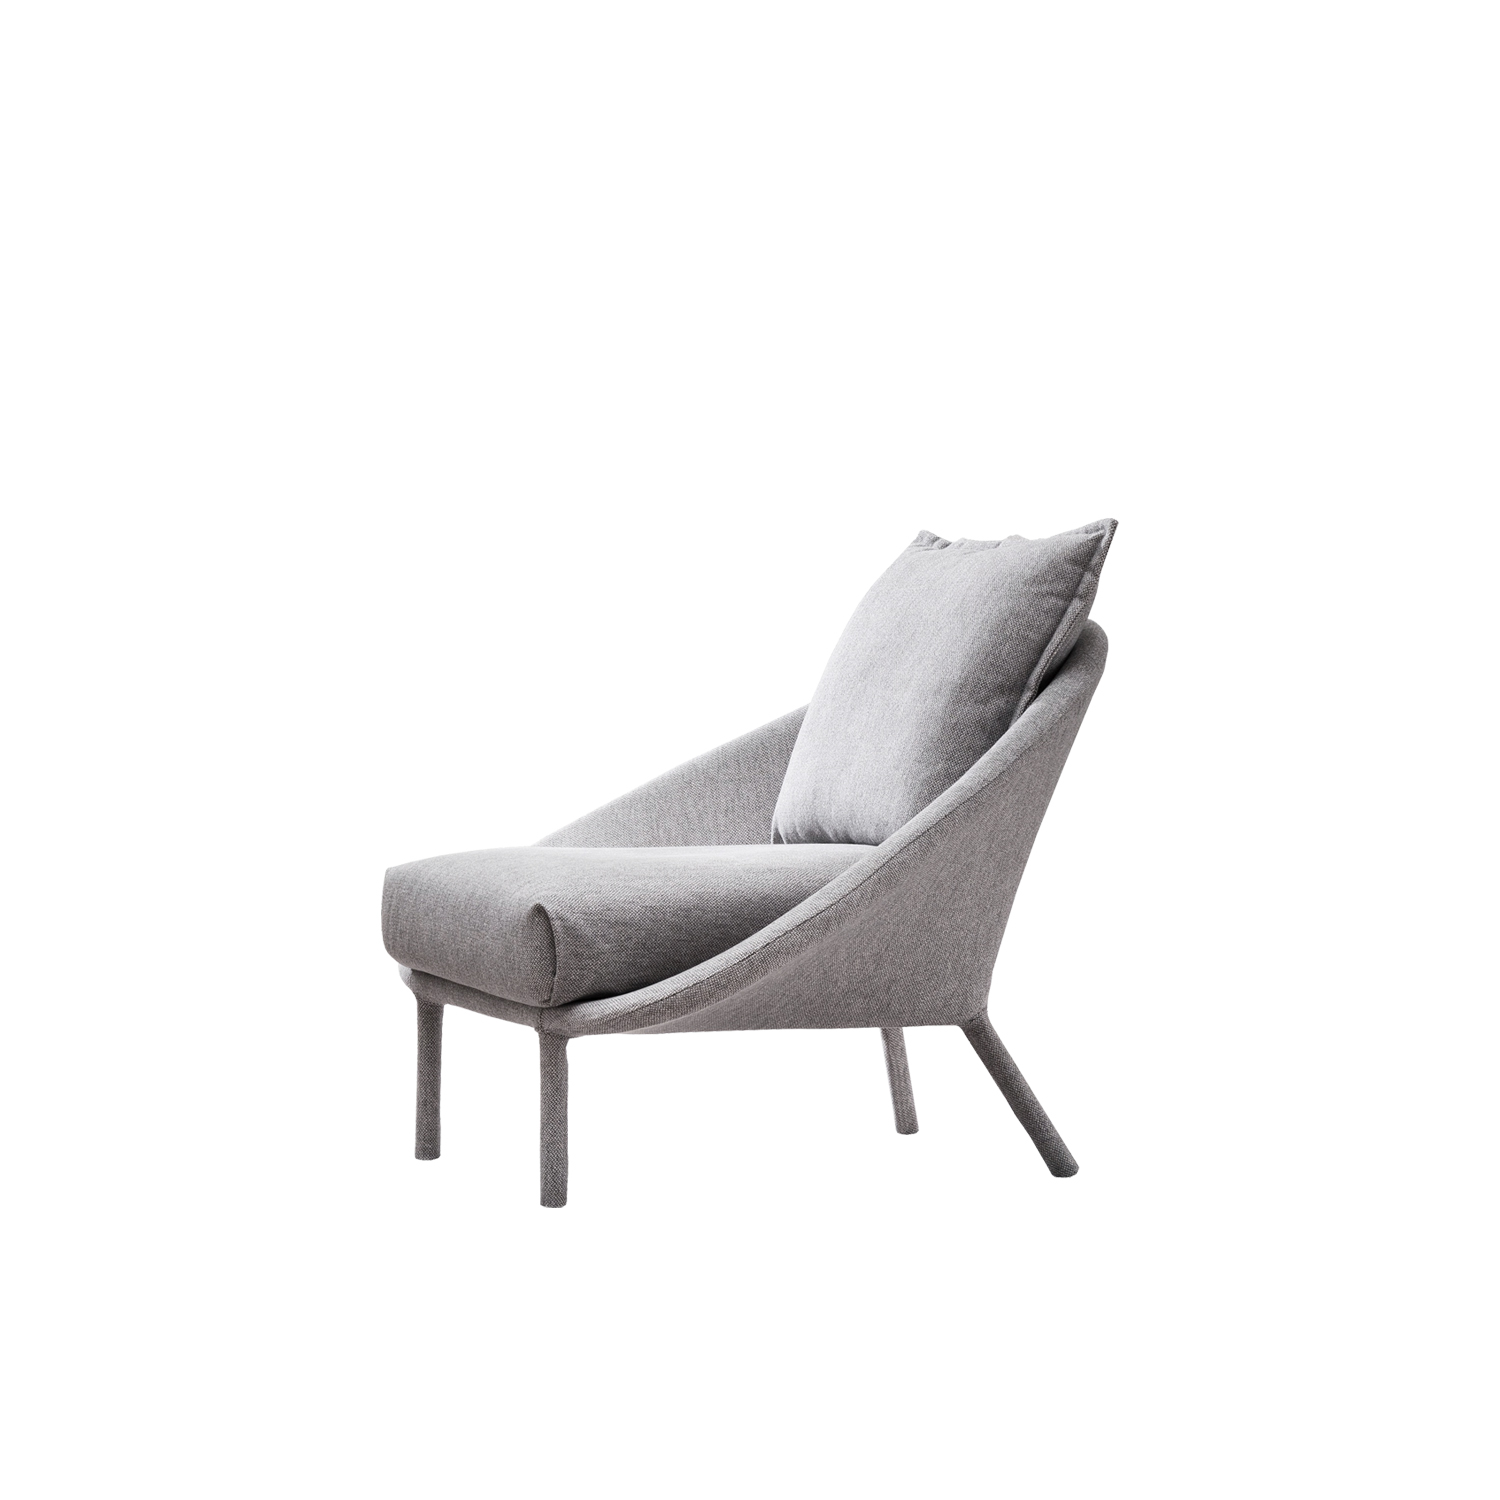 Lem Lounge Chair - The tubular structure with the aid of straps, is fully covered in fabric, which tends, without using foams, creating soft and sinuous shapes which soaring upwards thanks to the slender legs, just like a lunar module. Soft seat cushions and back rest on the shell fabric to ensure maximum comfort. The series LEM is complete of four variants, two or three seater sofa, armchair and ottoman.